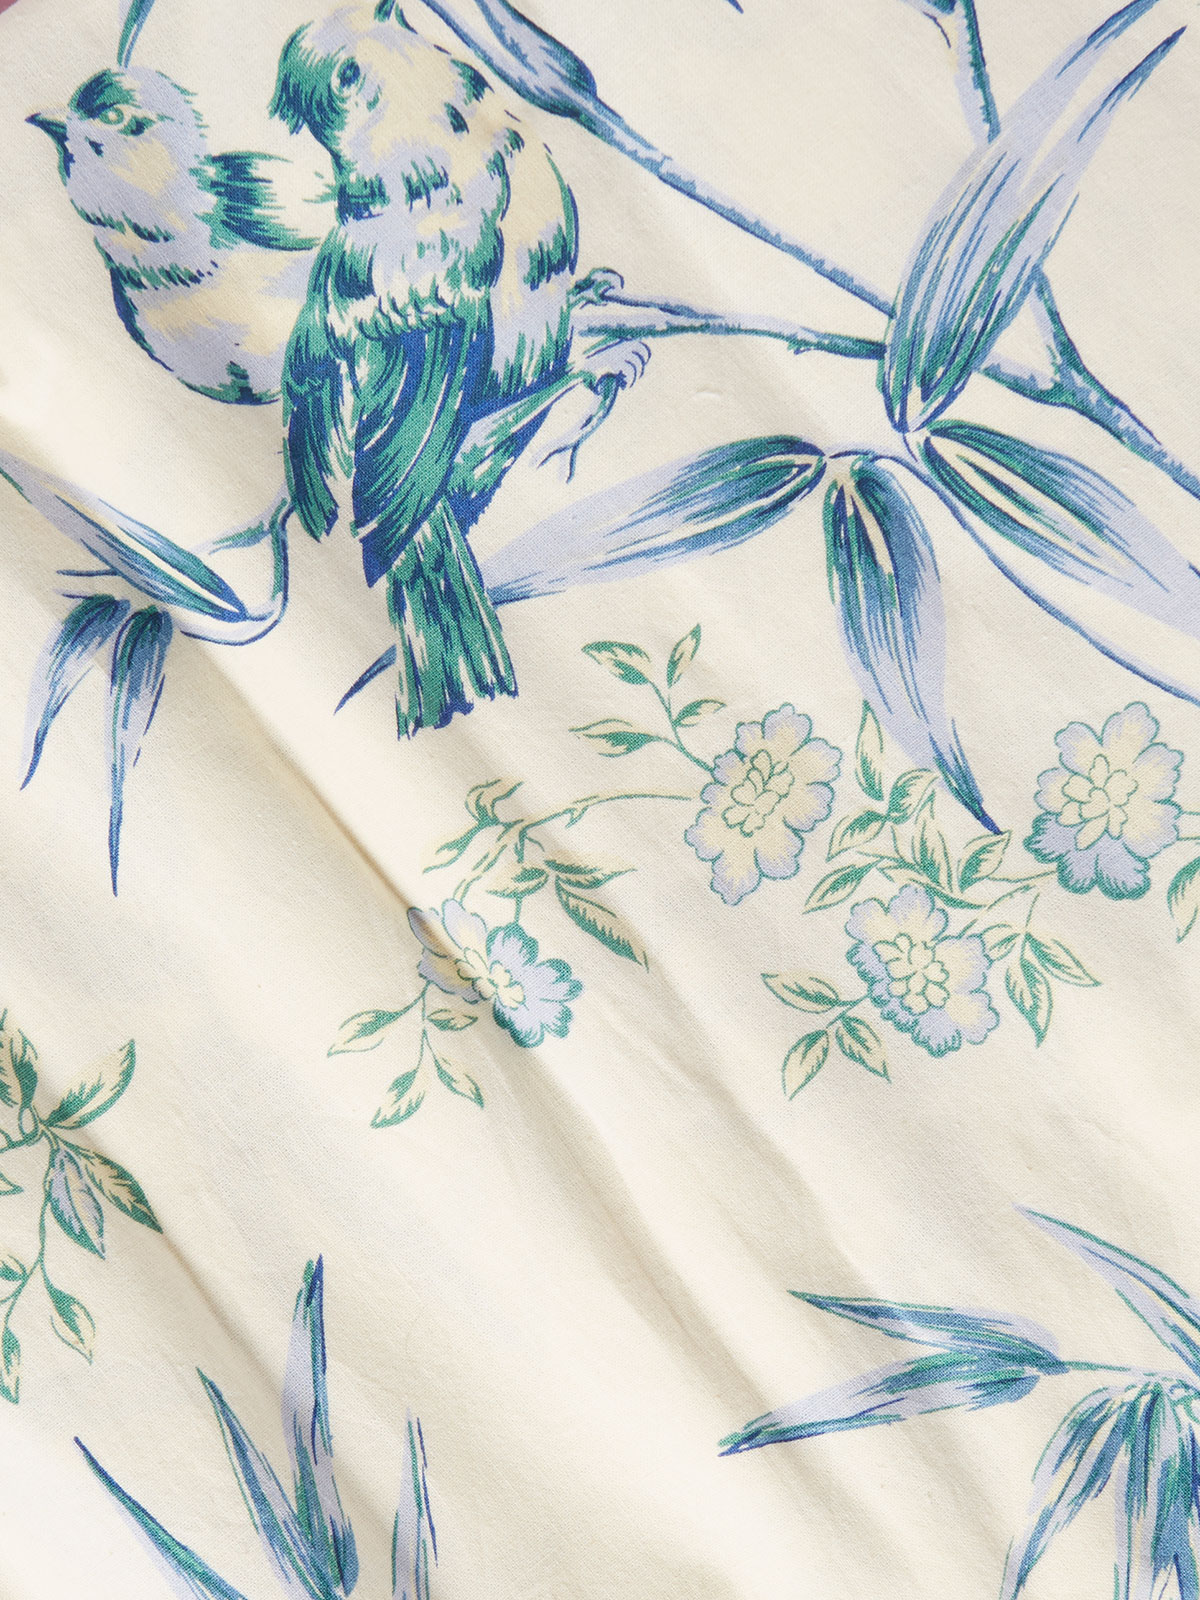 Bamboo Garden Fabric By The Yard Artist S Studio Collection